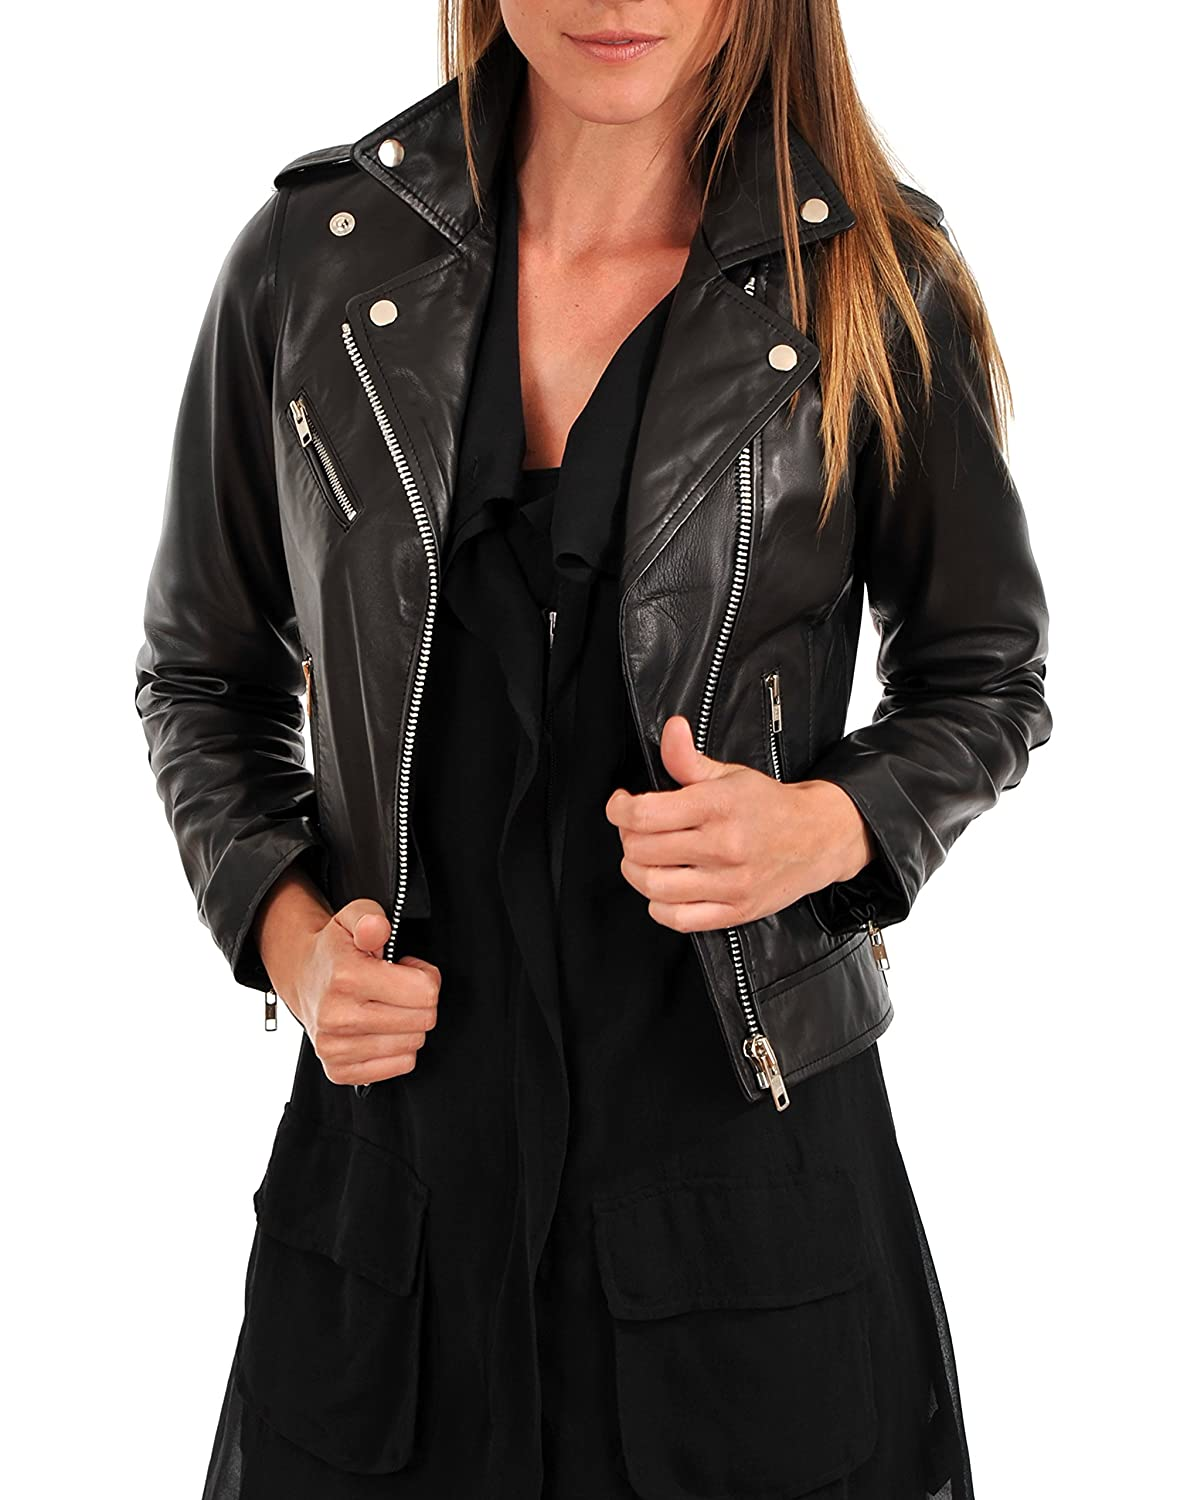 Black6fc DOLLY LAMB 100% Leather Jacket for Women  Slim Fit & Quilted  Moto, Bomber, Biker Winter Casual Wear